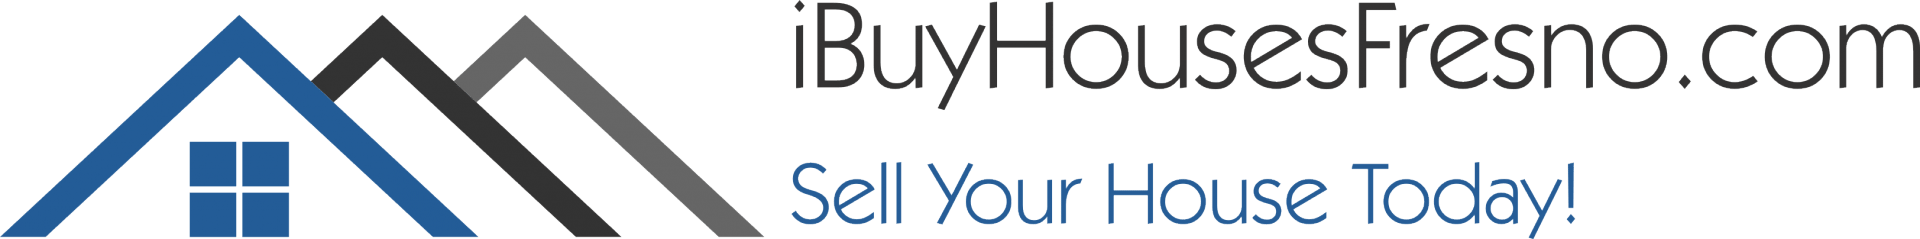 I Buy Houses Fresno logo